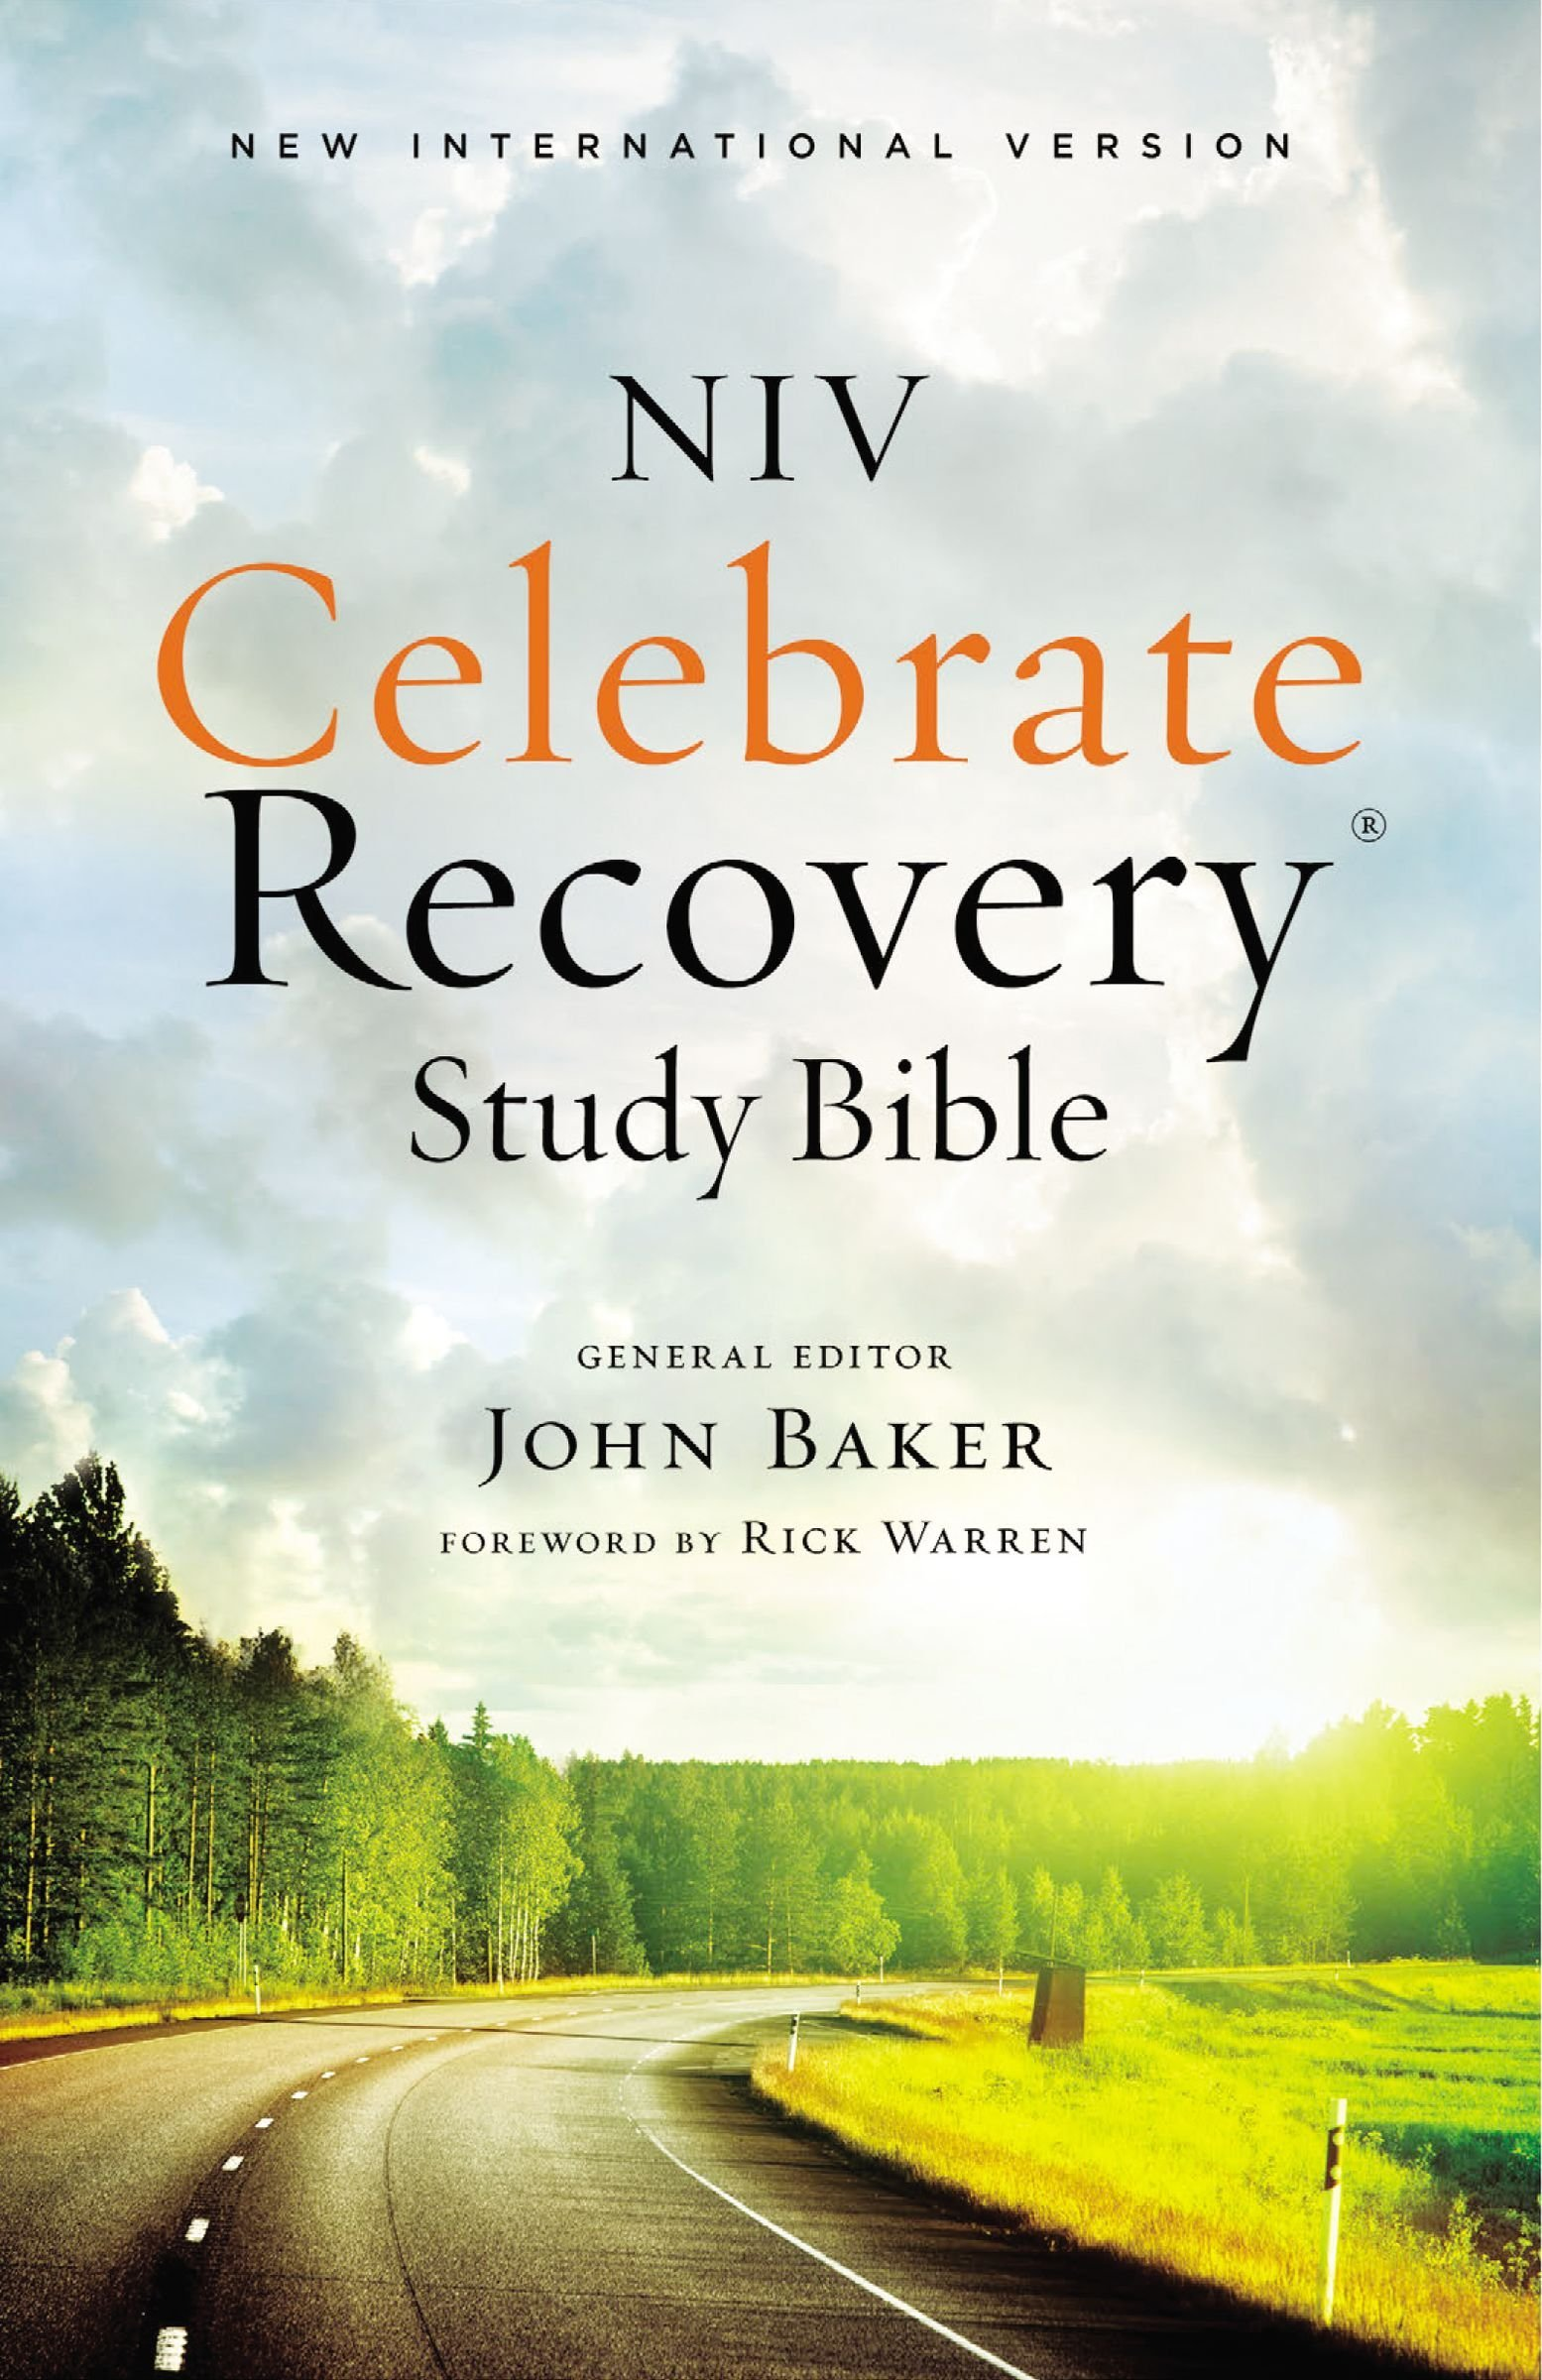 Niv celebrate recovery study bible john baker rick warren niv celebrate recovery study bible john baker rick warren 0025986445171 amazon books colourmoves